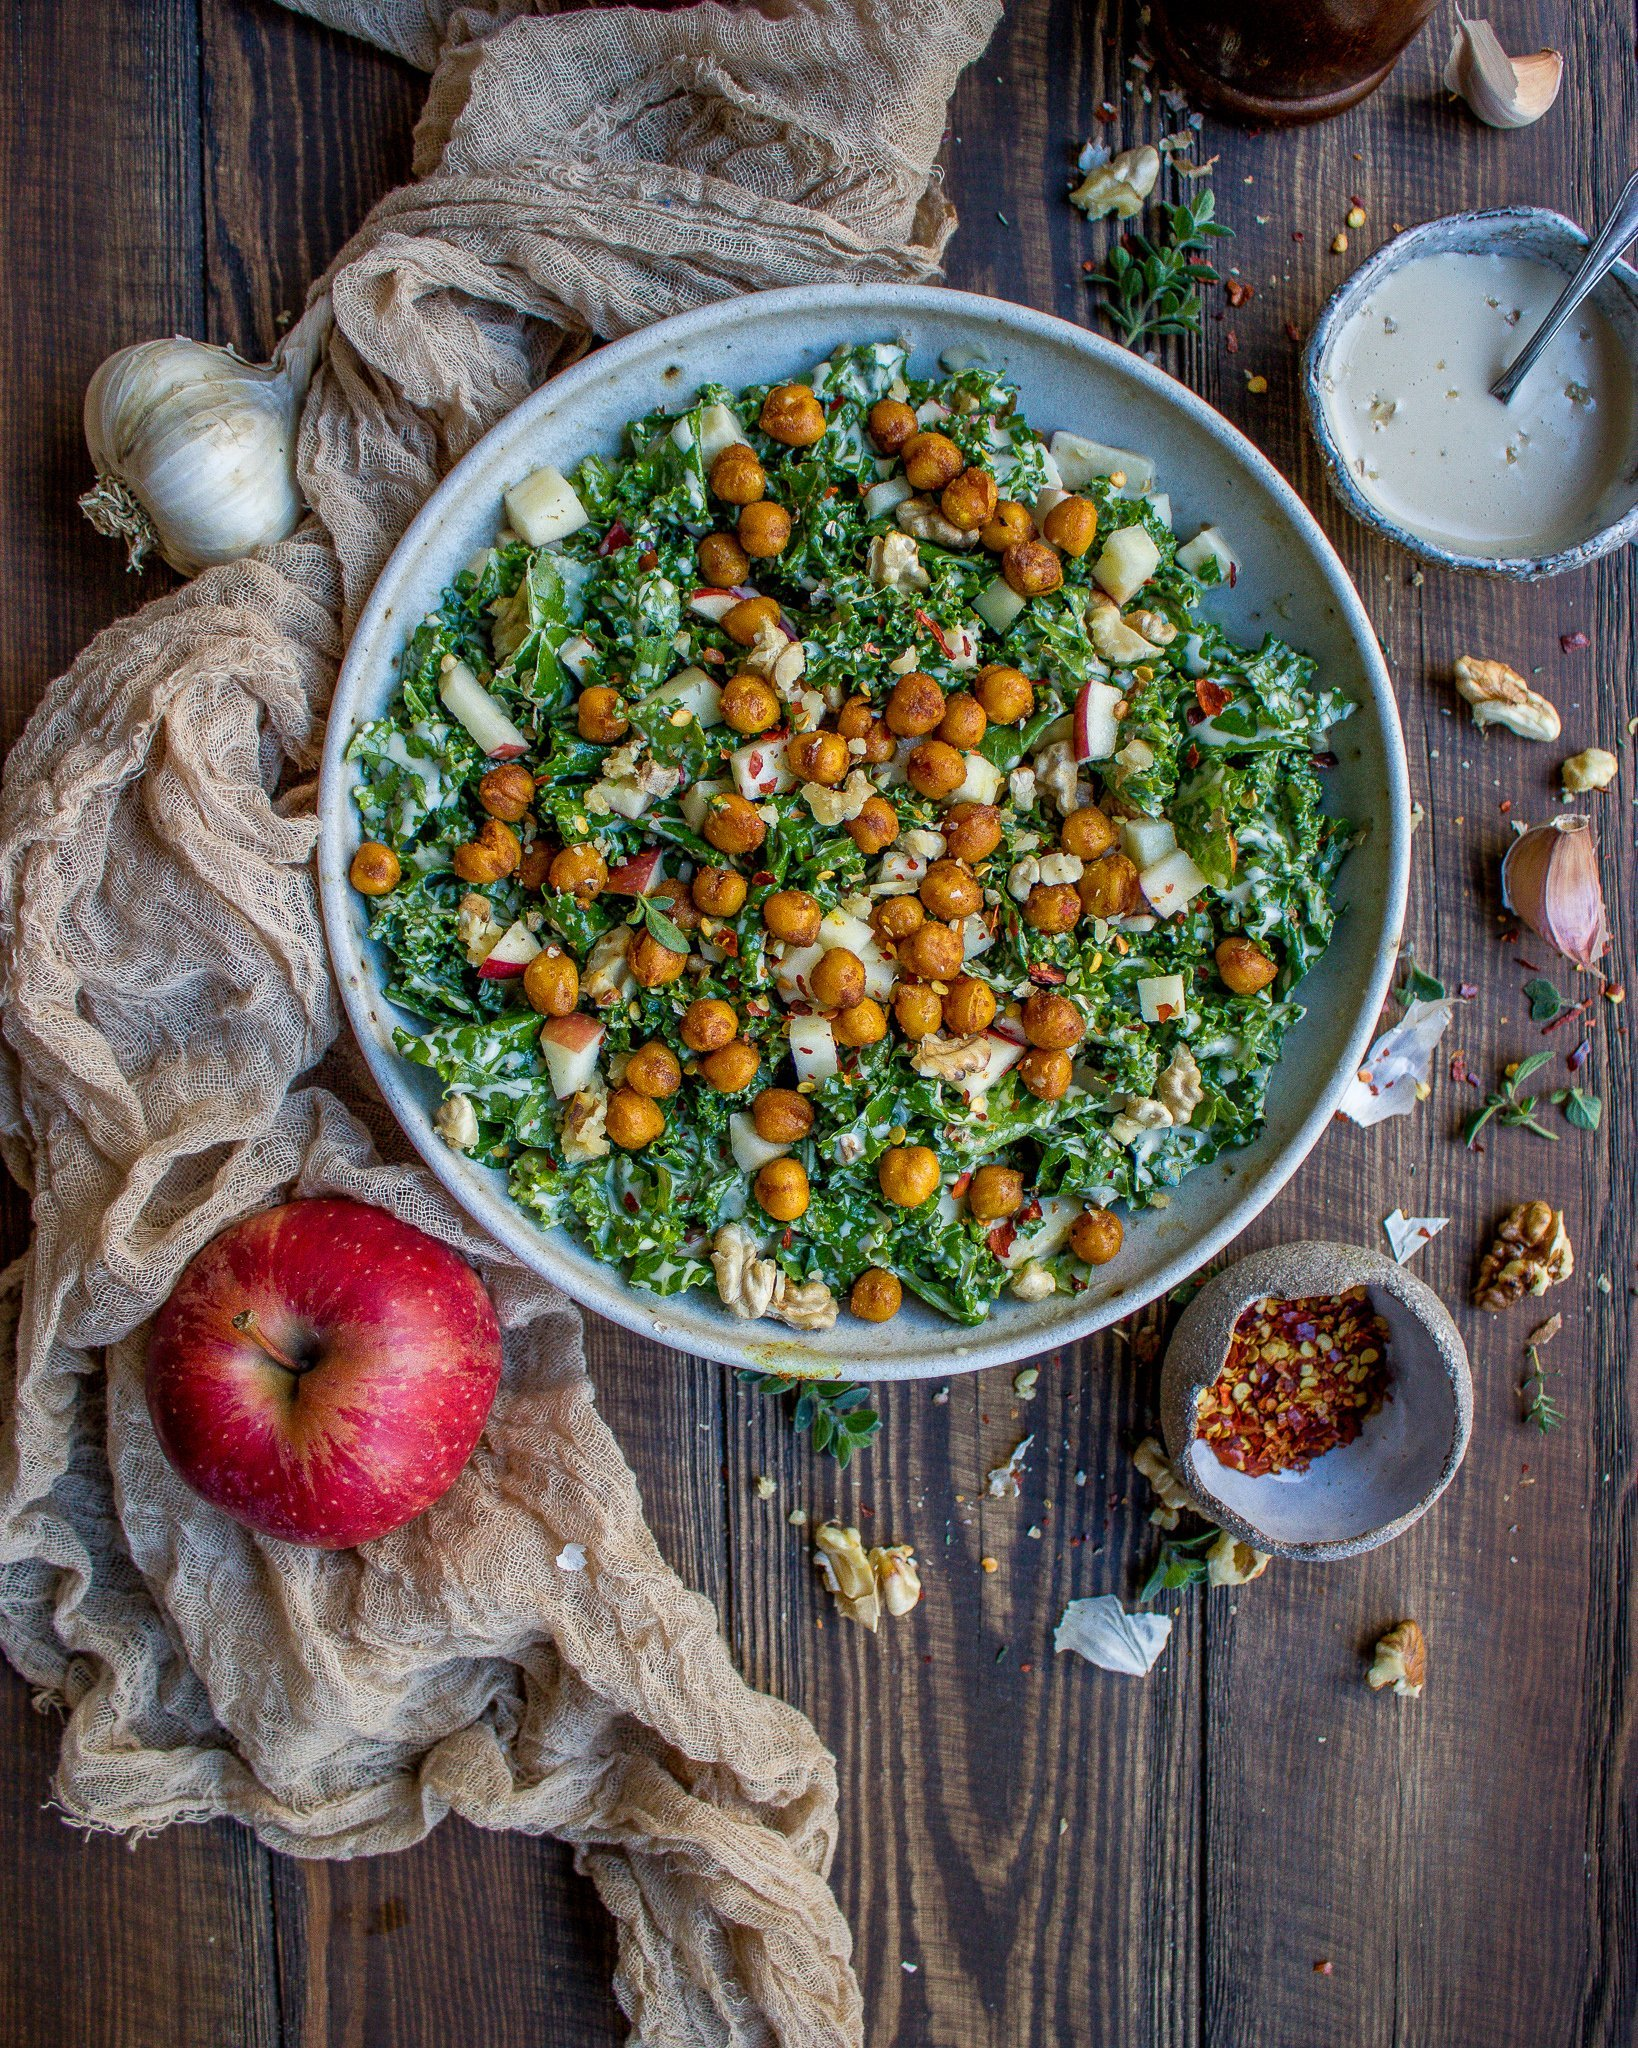 Kale Salad with a Roasted Garlic Tahini Dressing